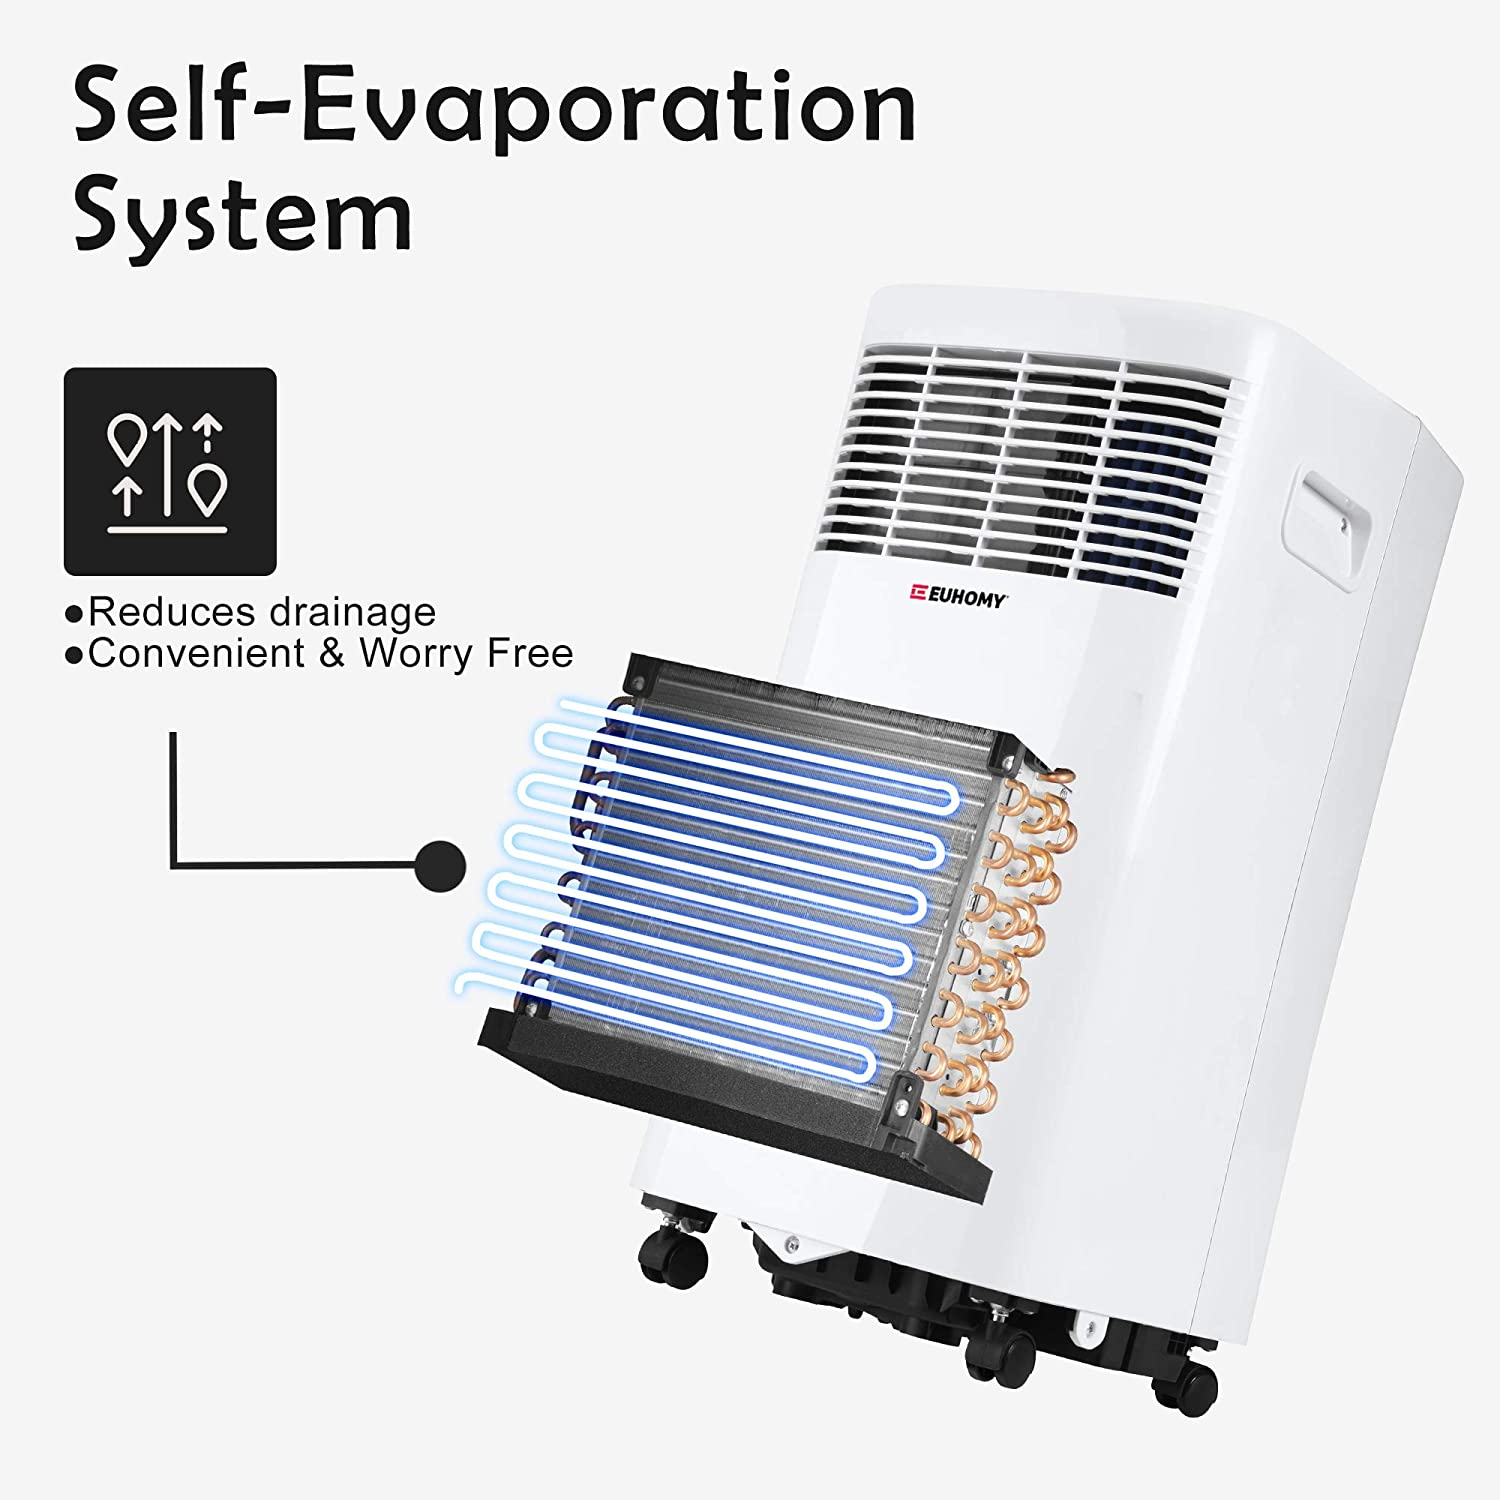 portable ac unit with Remote Control Dorm White Bedroom floor air conditioner with Window Installation Kit For Room EUHOMY 8,000 BTU Portable Air Conditioner Dehumidifier Office